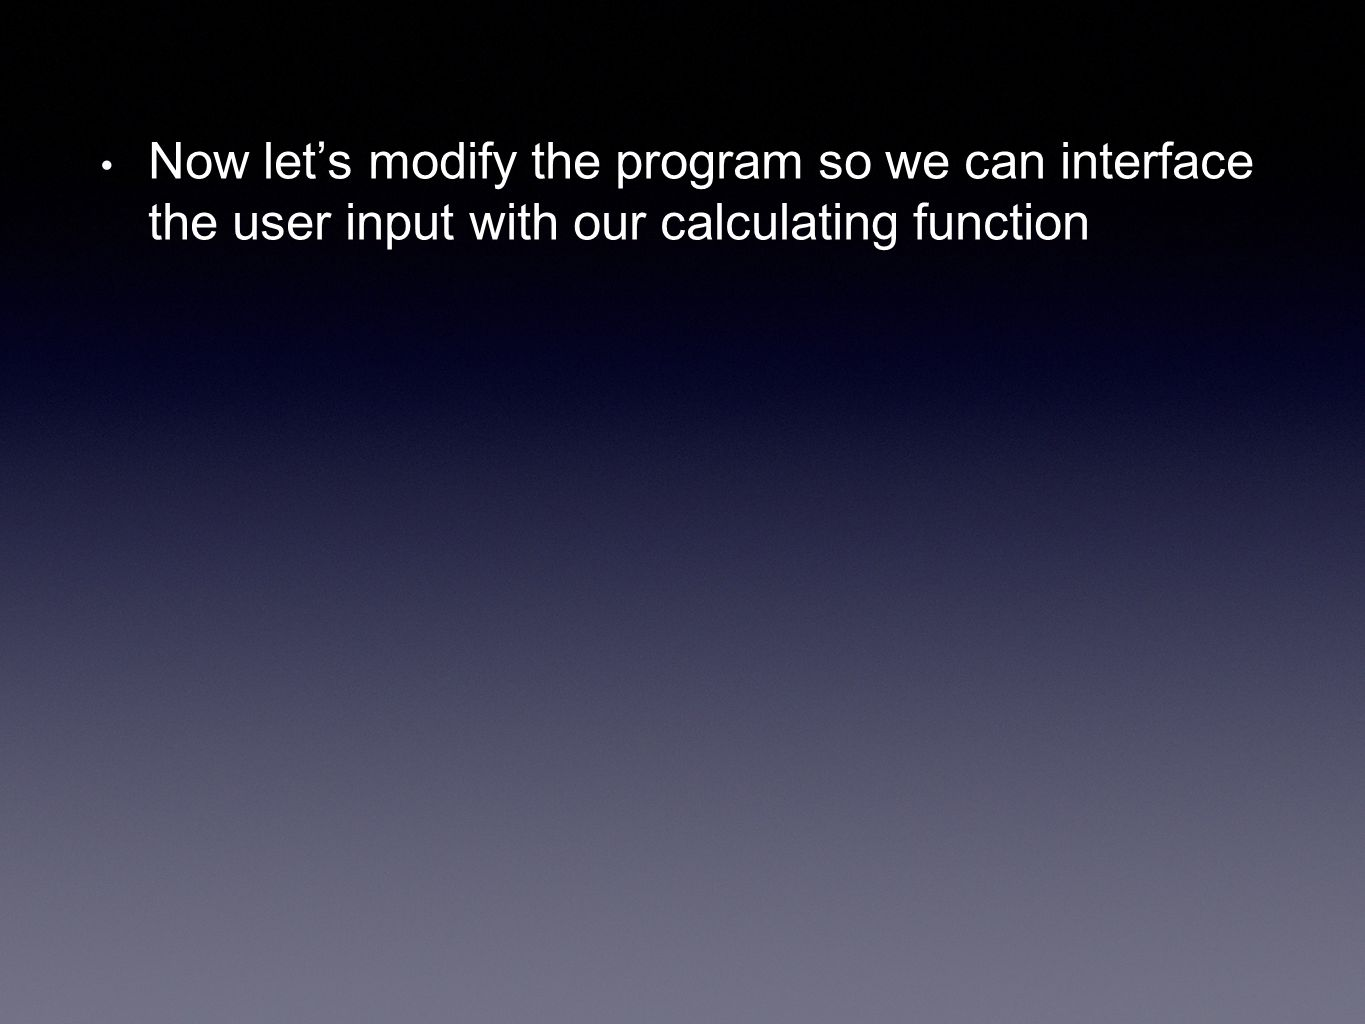 Now let's modify the program so we can interface the user input with our calculating function